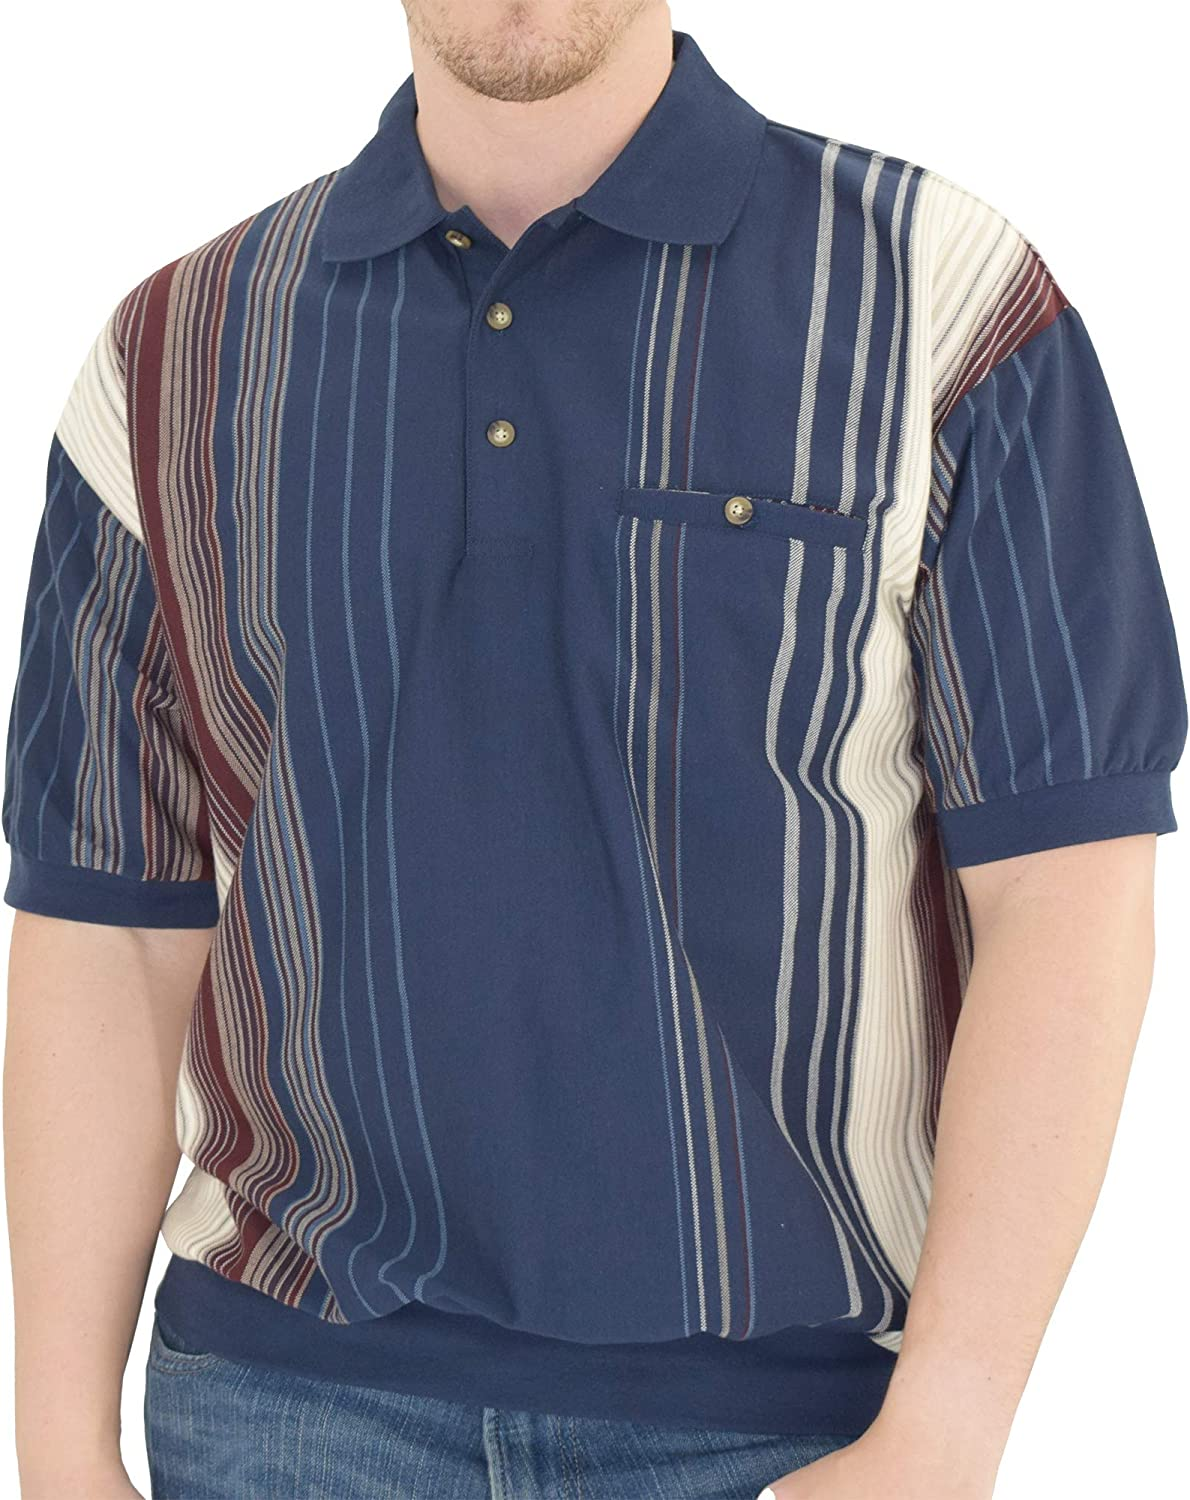 1960s Mens Shirts | 60s Mod Shirts, Hippie Shirts Big and Tall Classics by Palmland Short Sleeve Banded Bottom Polo Shirt - 6090-V2 -  $37.99 AT vintagedancer.com